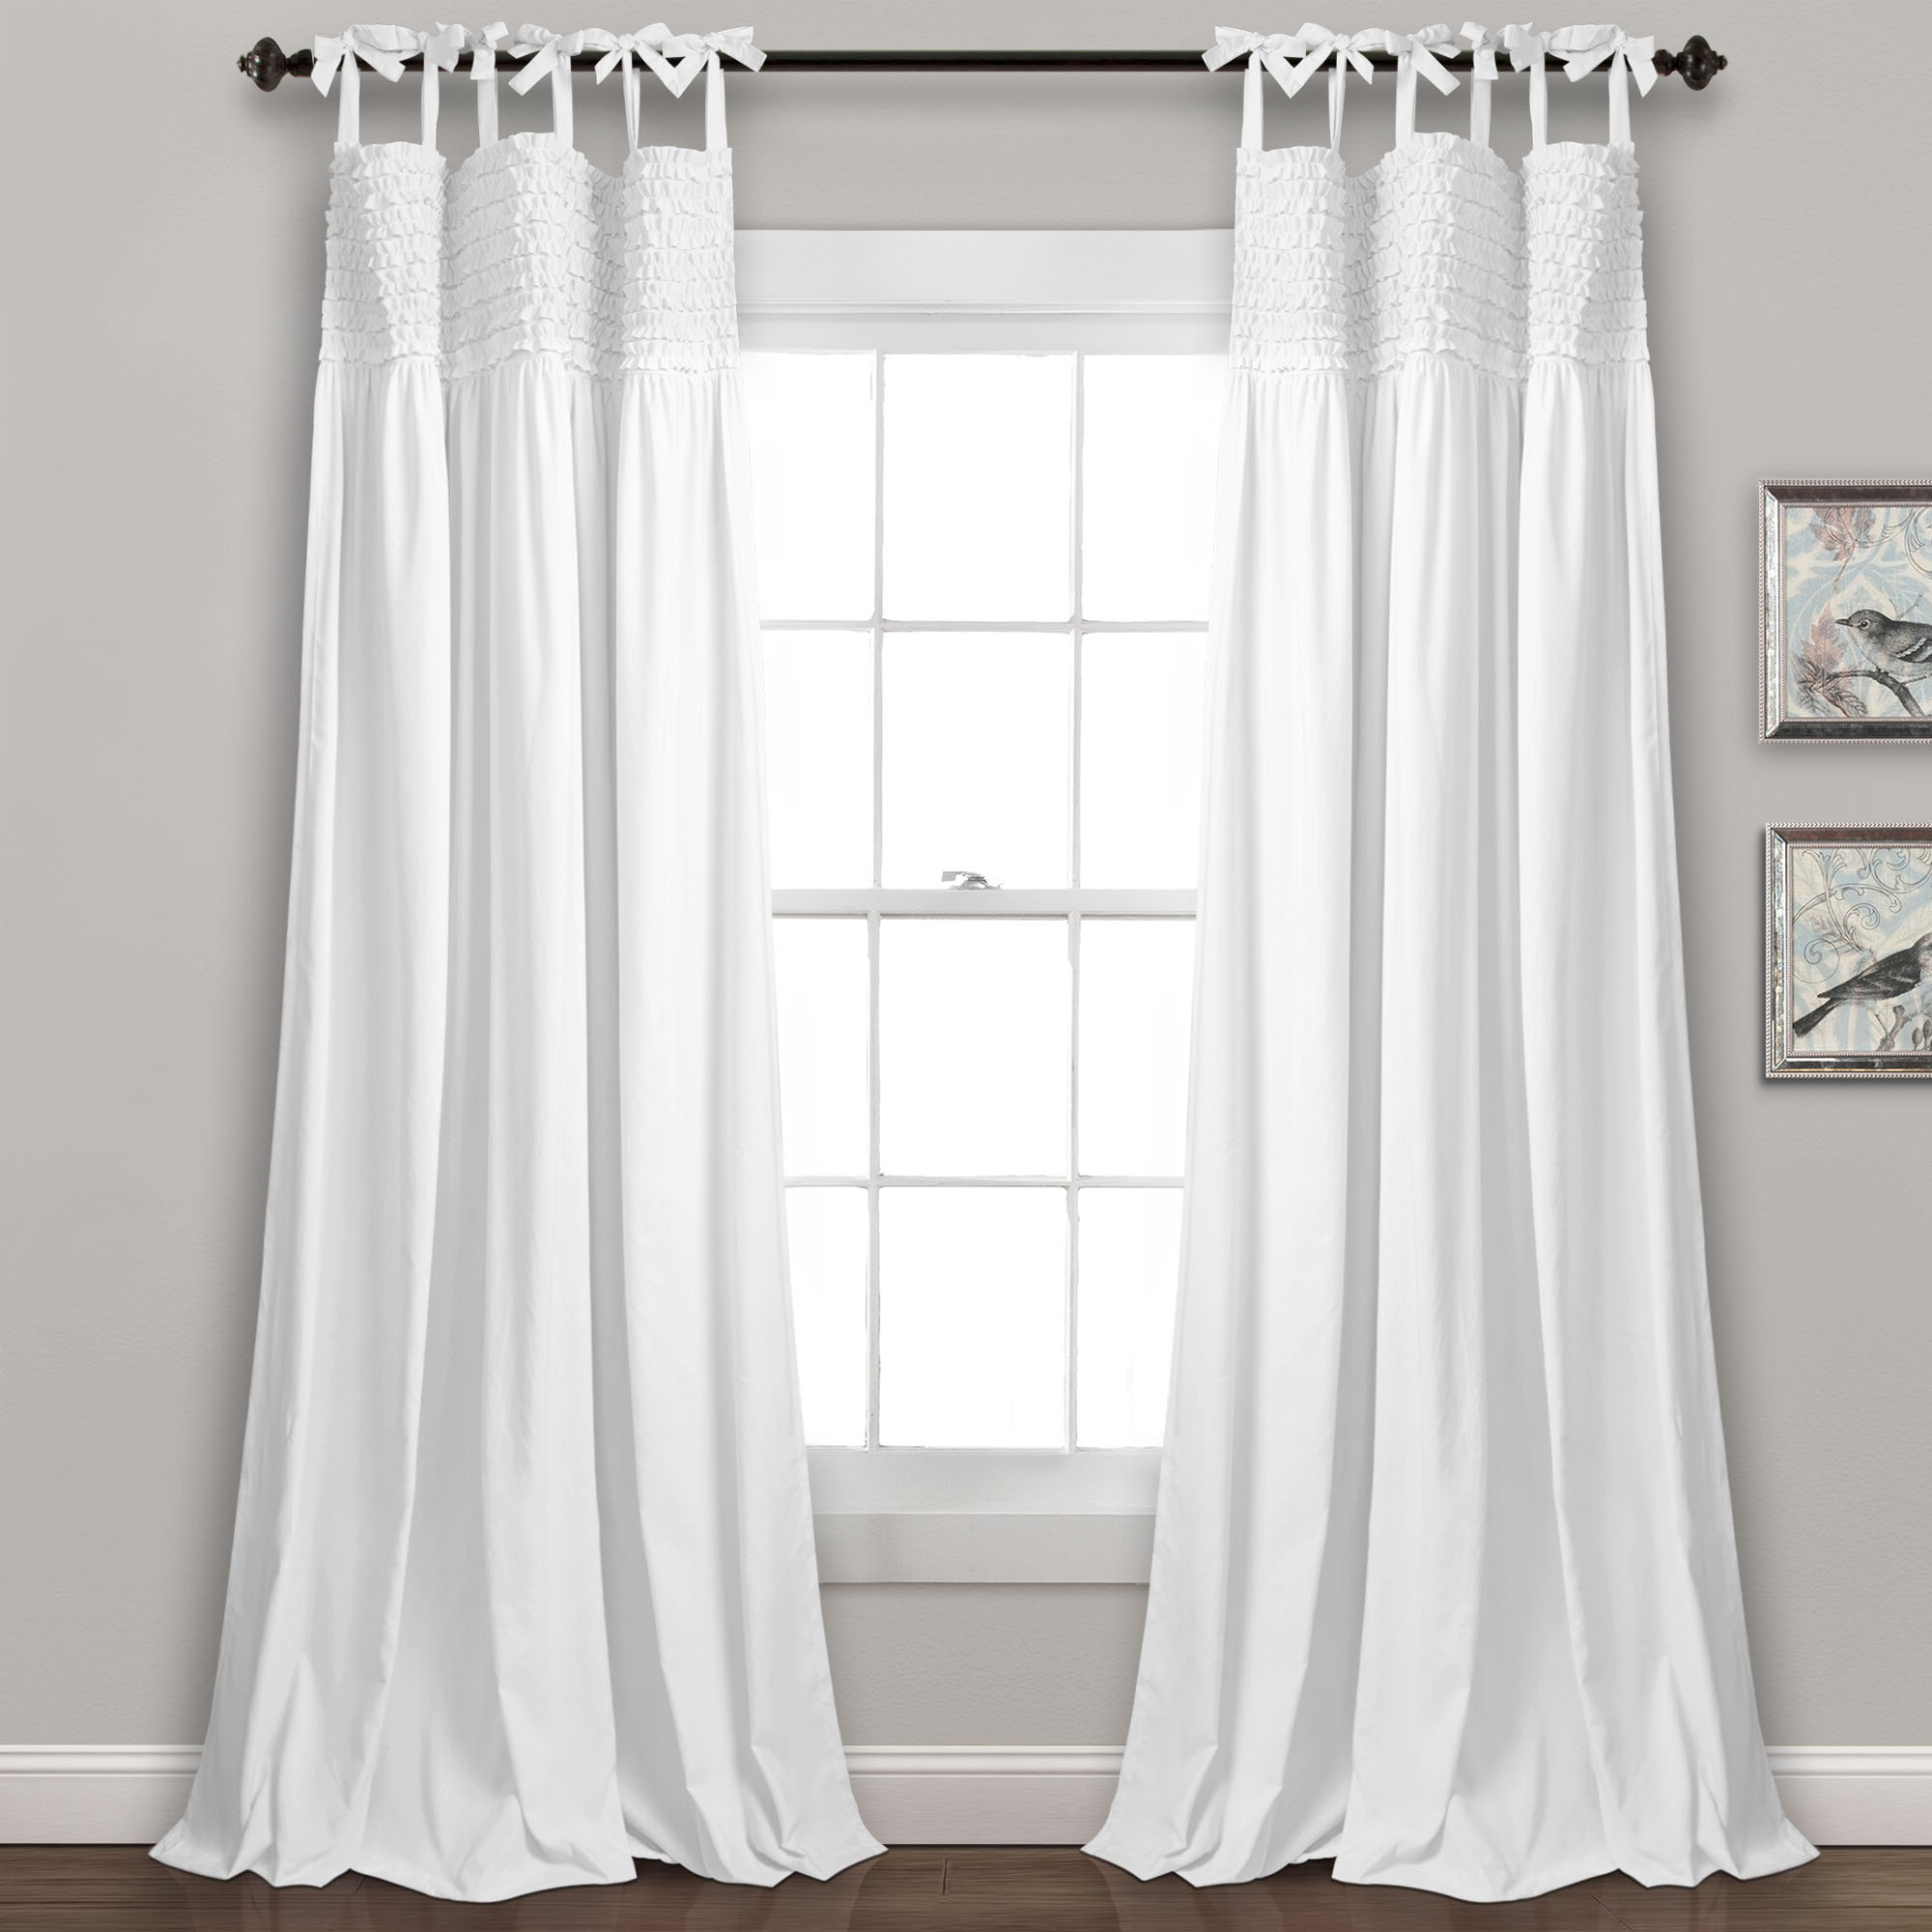 Famous Marine Life Motif Knitted Lace Window Curtain Pieces Pertaining To Edvin Ruffle Solid Semi Sheer Tie Top Window Panels (Gallery 15 of 20)